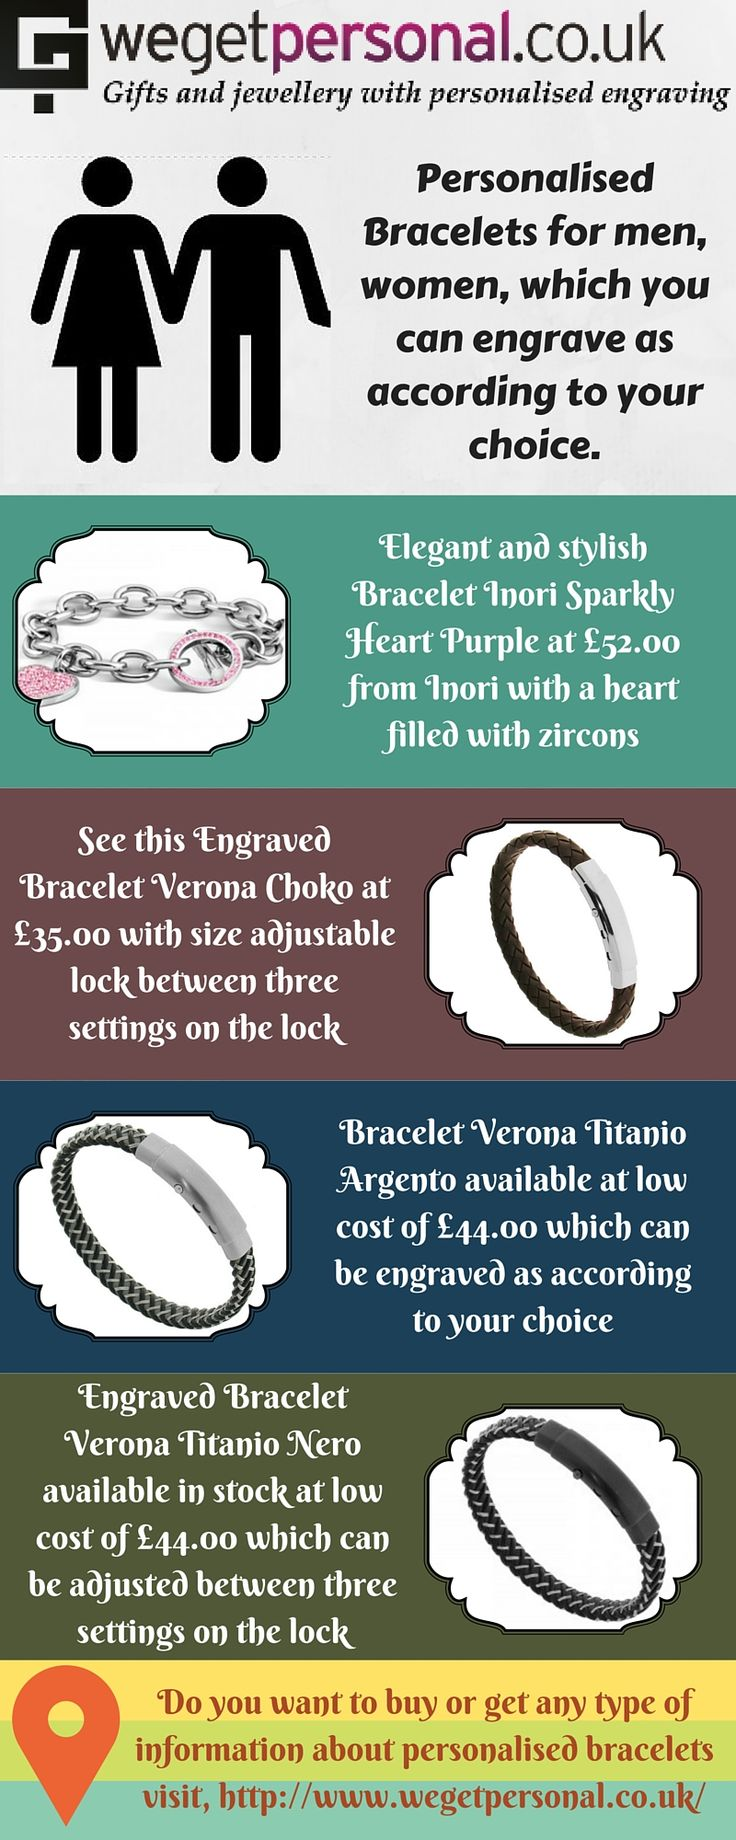 Find out most populer and modern personalised bracelets for men and women at We Get Personal UK. You can choose engraving text, font and size for your bracelet to make it more beautiful. You can carefully bend the bracelet to make it smaller or larger. You need to read our size guide, before ordering an engraved bracelet. #BraceletInoriSparklyHeartPurple #BraceletVeronaChoko #BraceletVeronaTitanioArgento #BraceletVeronaTitanioNero